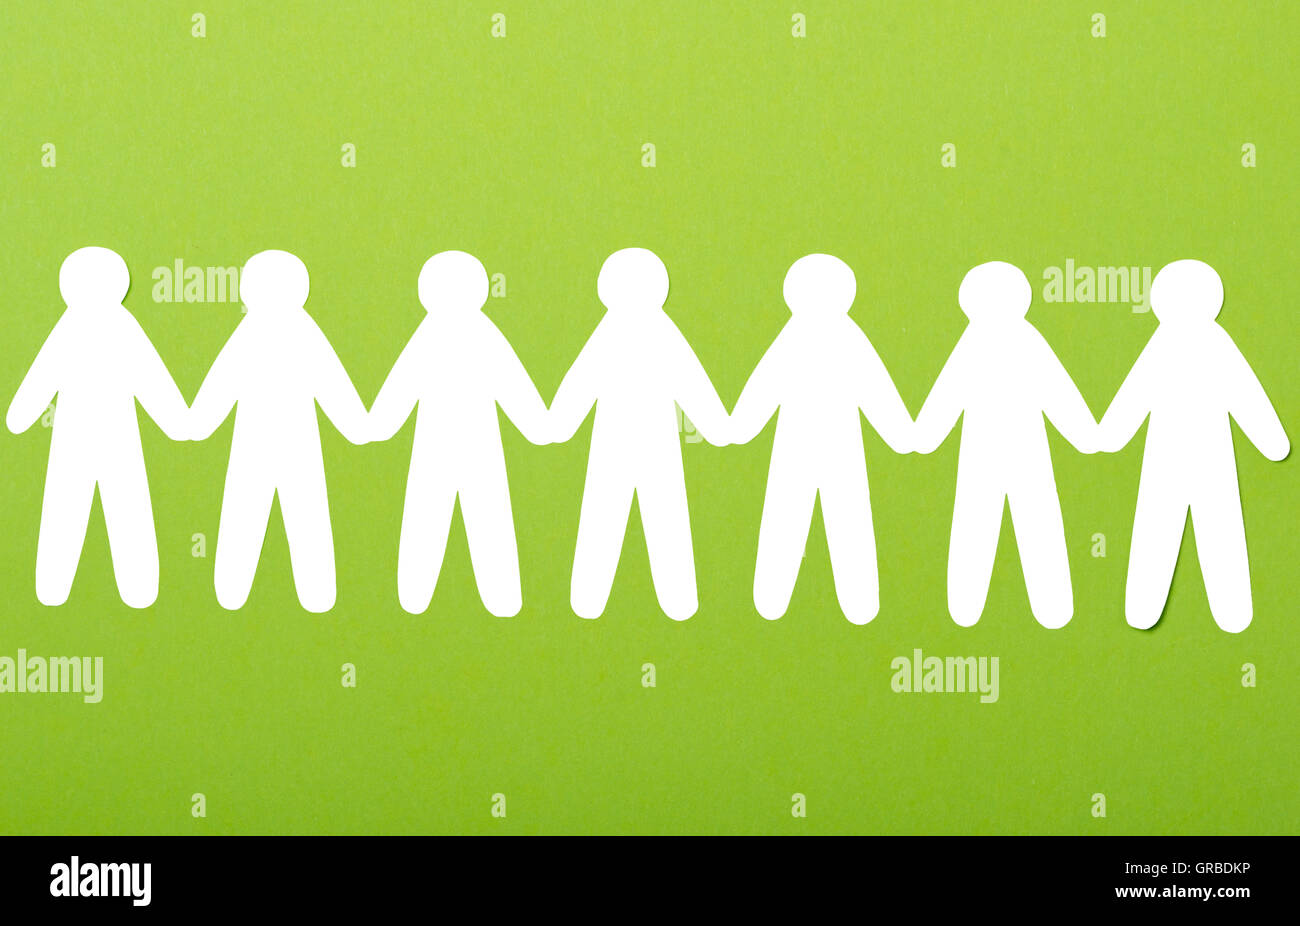 team of paper people on green background - Stock Image